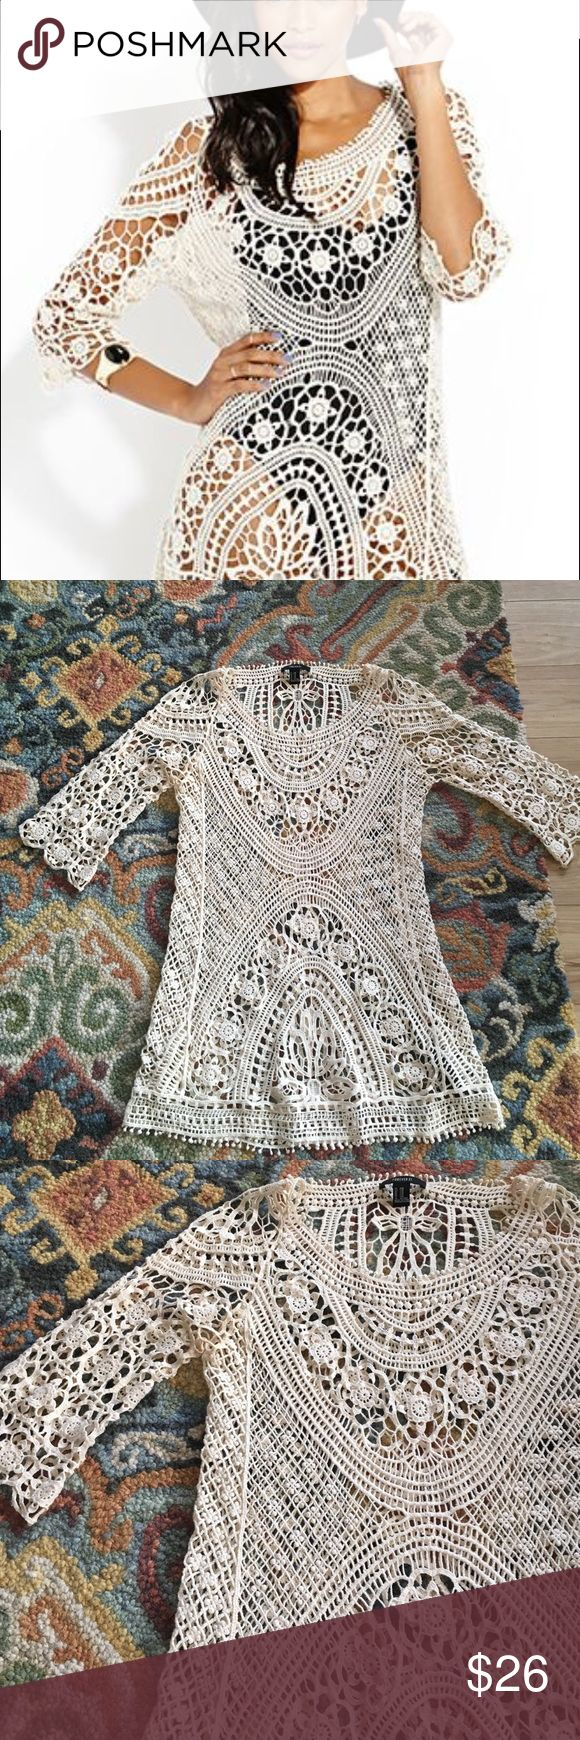 Crochet mini longsleeve dress bohemian beach cover Worn once! Crochet mini with 3/4 sleeves from Forever 21. Bohemian closet essential, wear as a cover up or over a slip for a sexy summer night out Spell & The Gypsy Collective Swim Coverups